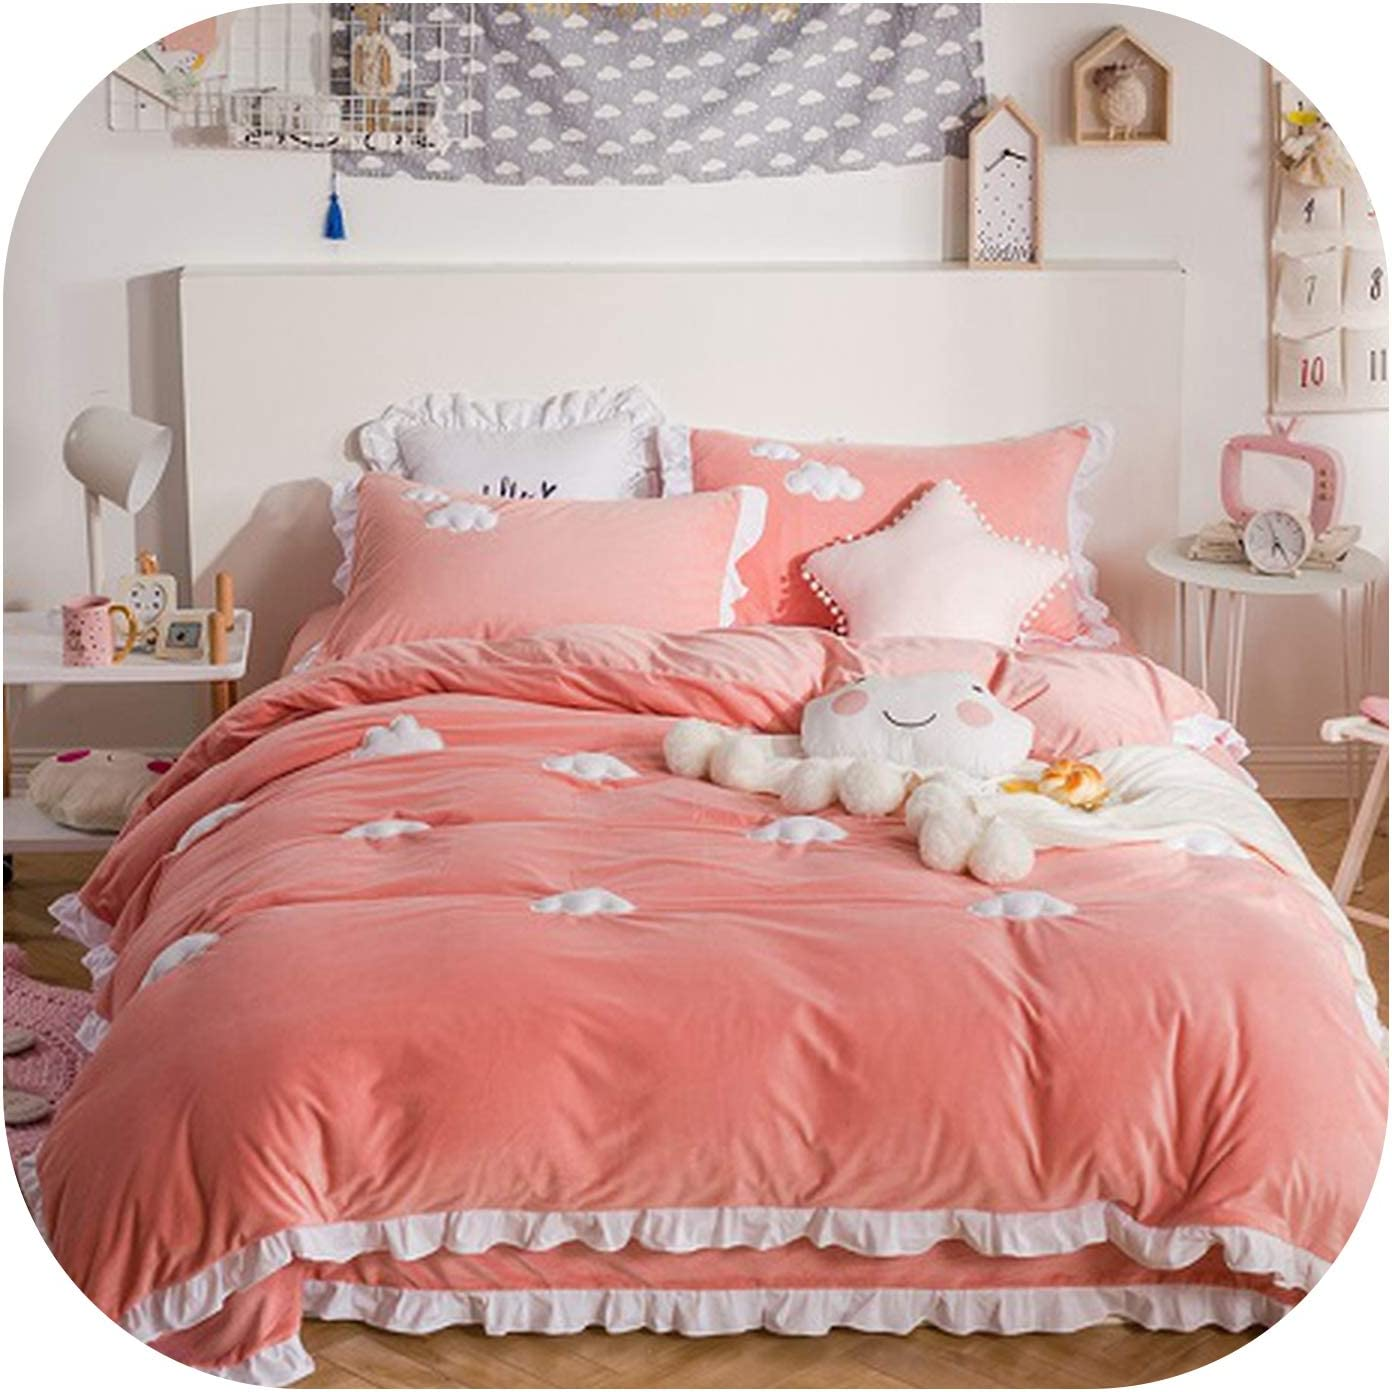 Blue Pink Thick Fleece Winter Cute Bedding Set King Queen Twin Size Kids Girls Bed Set Bedsheet Clouds Duvet Cover Pillowcase Bedding Set 2 Twin 3pcs Home Kitchen